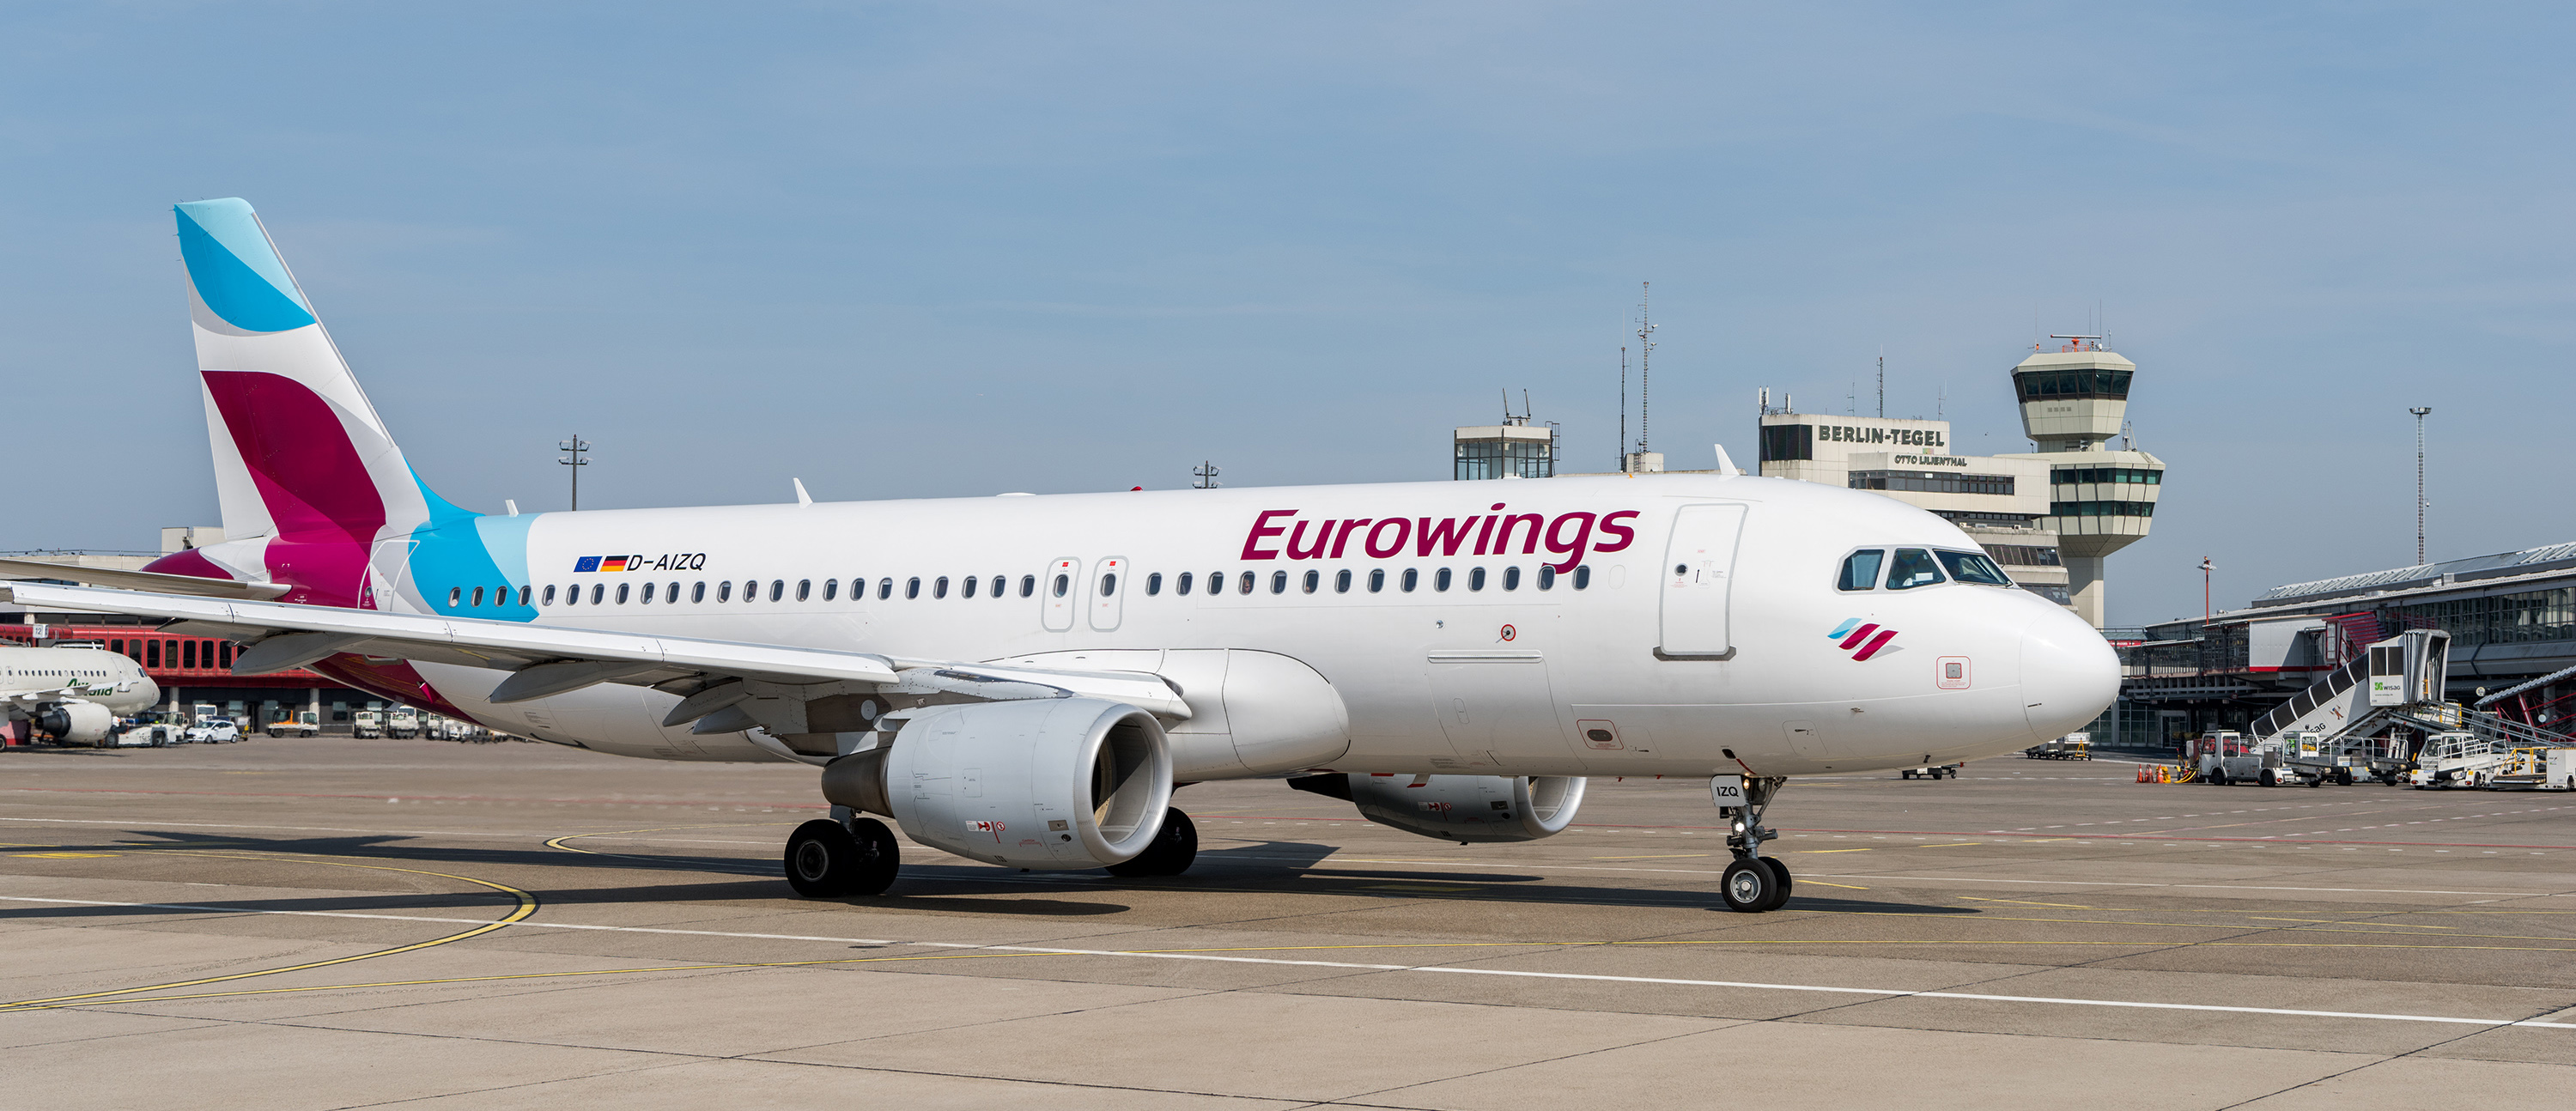 More flights, new destinations: Eurowings increases their services from Berlin Tegel